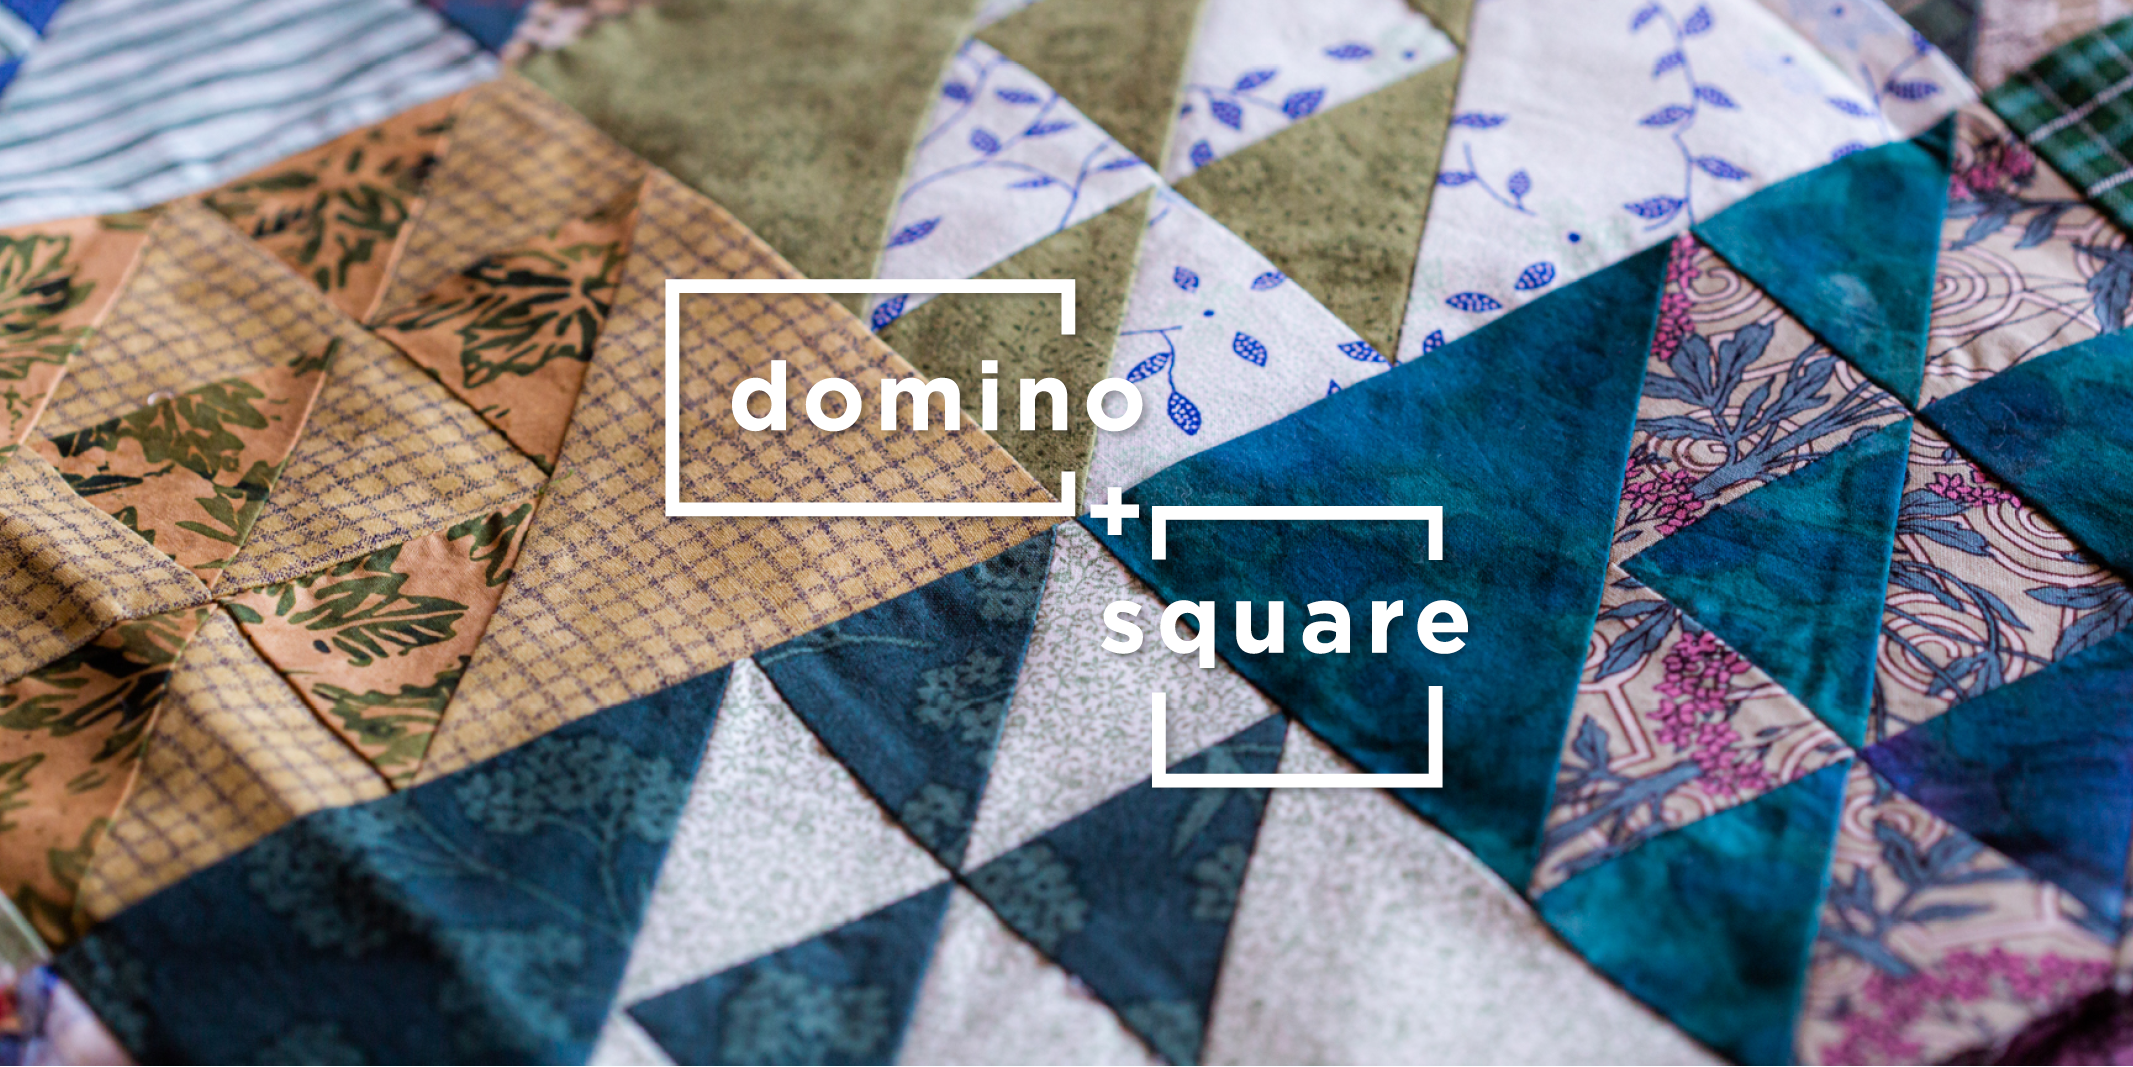 Knitting Pattern Collection: Winter 2021 A Domino + Square - title overlaid on an closeup photo of a colorful geometric quilt